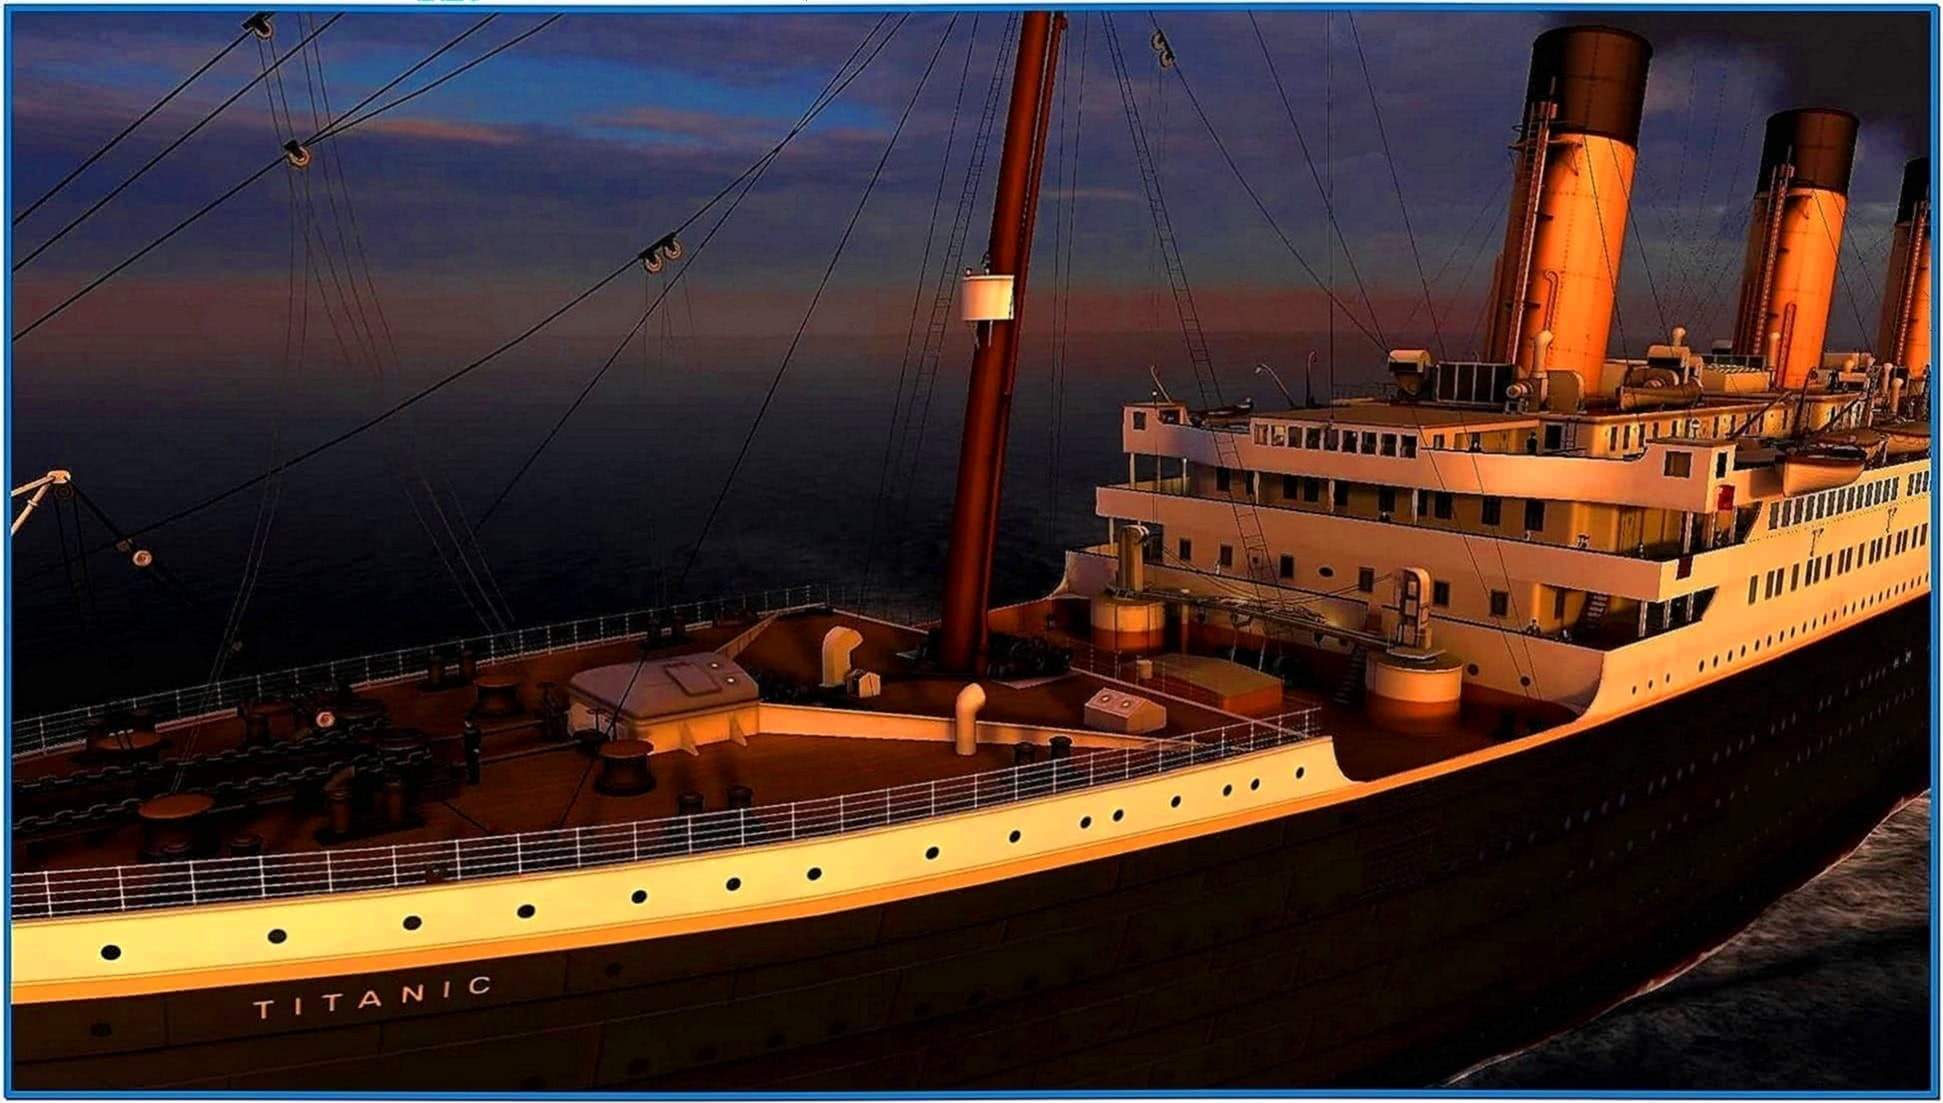 Titanic Memories 3D Screensaver Full